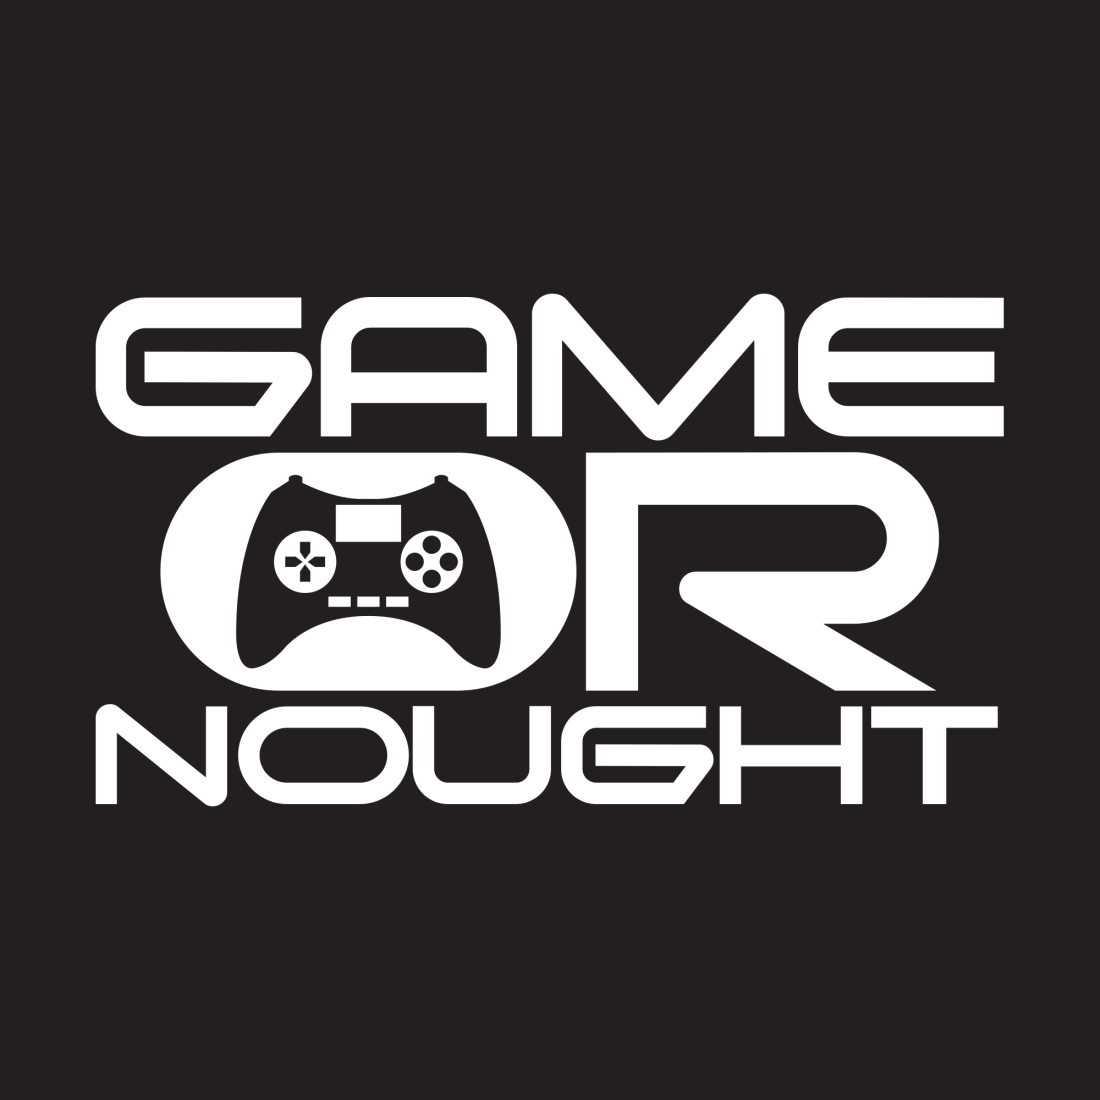 GameOrNought Black Logo